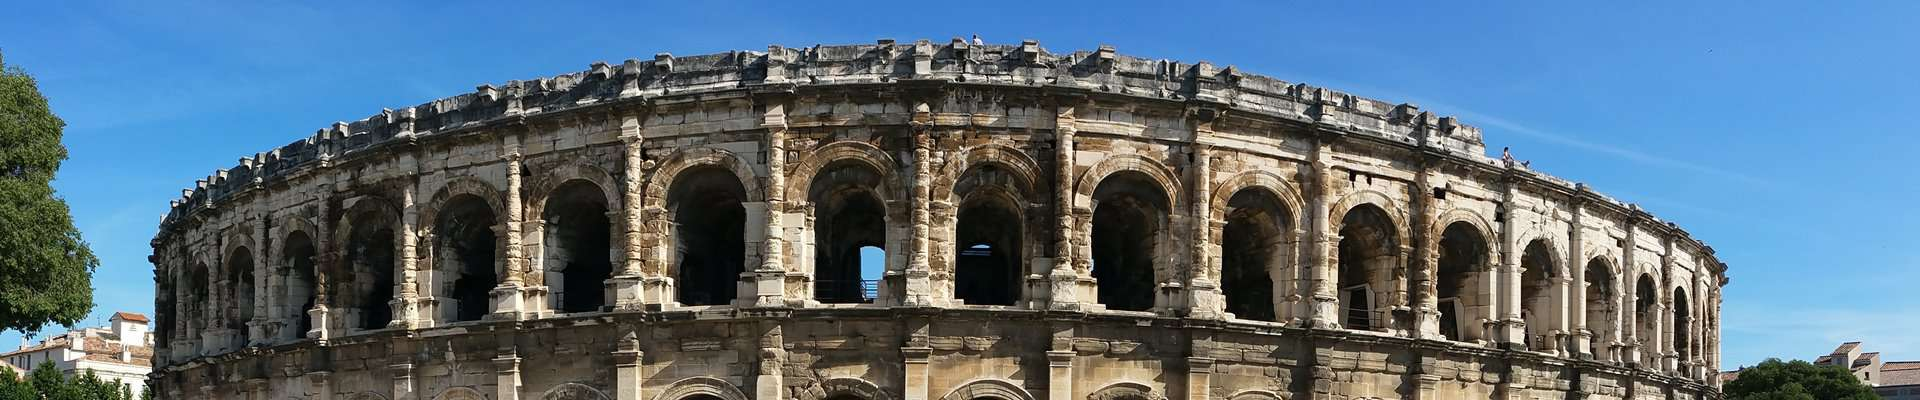 The top of the Roman arena in Nimes, France.